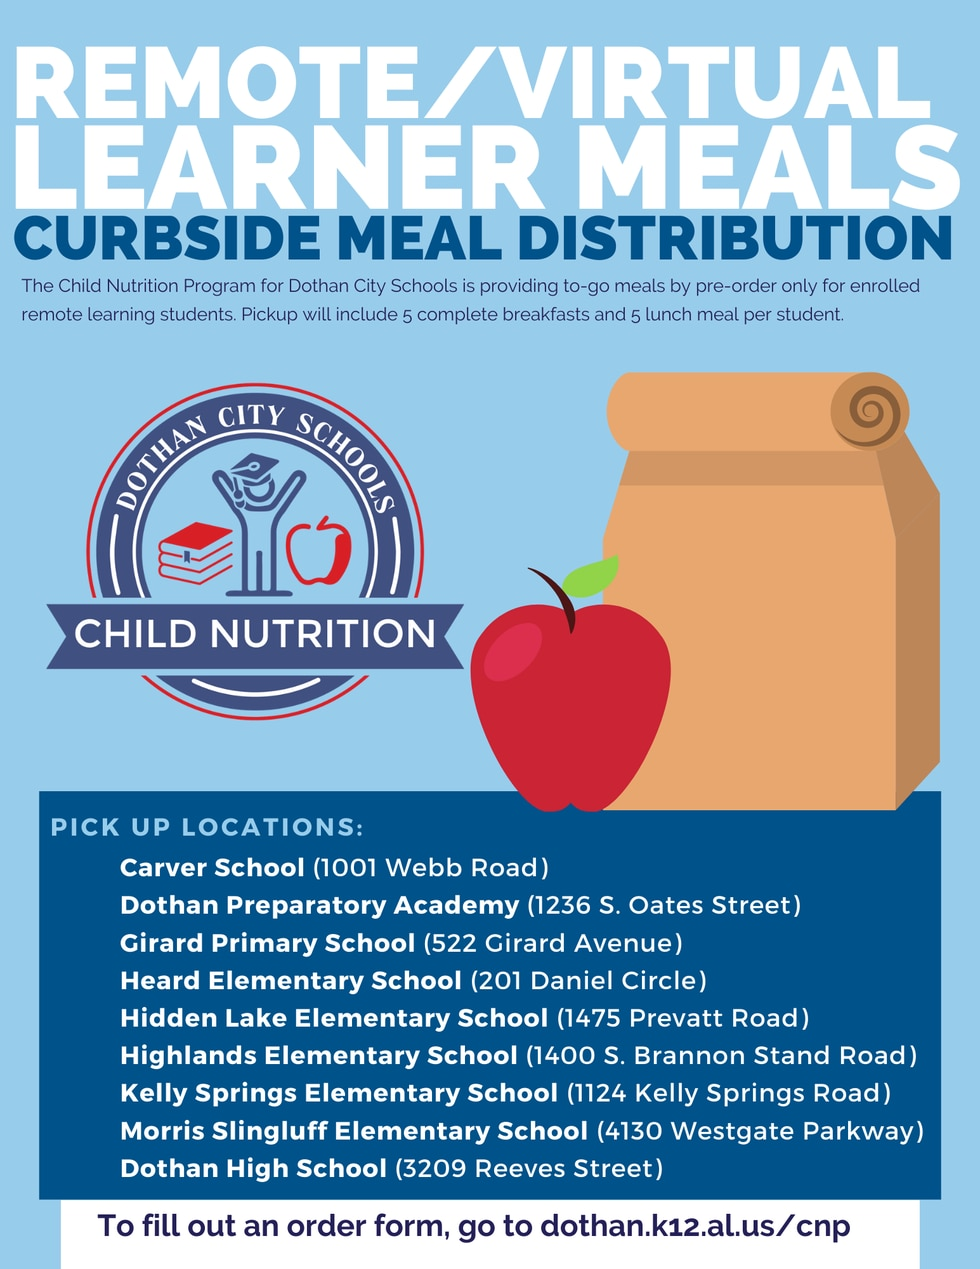 Dothan City Schools Child Nutrition Program will offer curbside meals by pre-order only for all enrolled remote/virtual students.